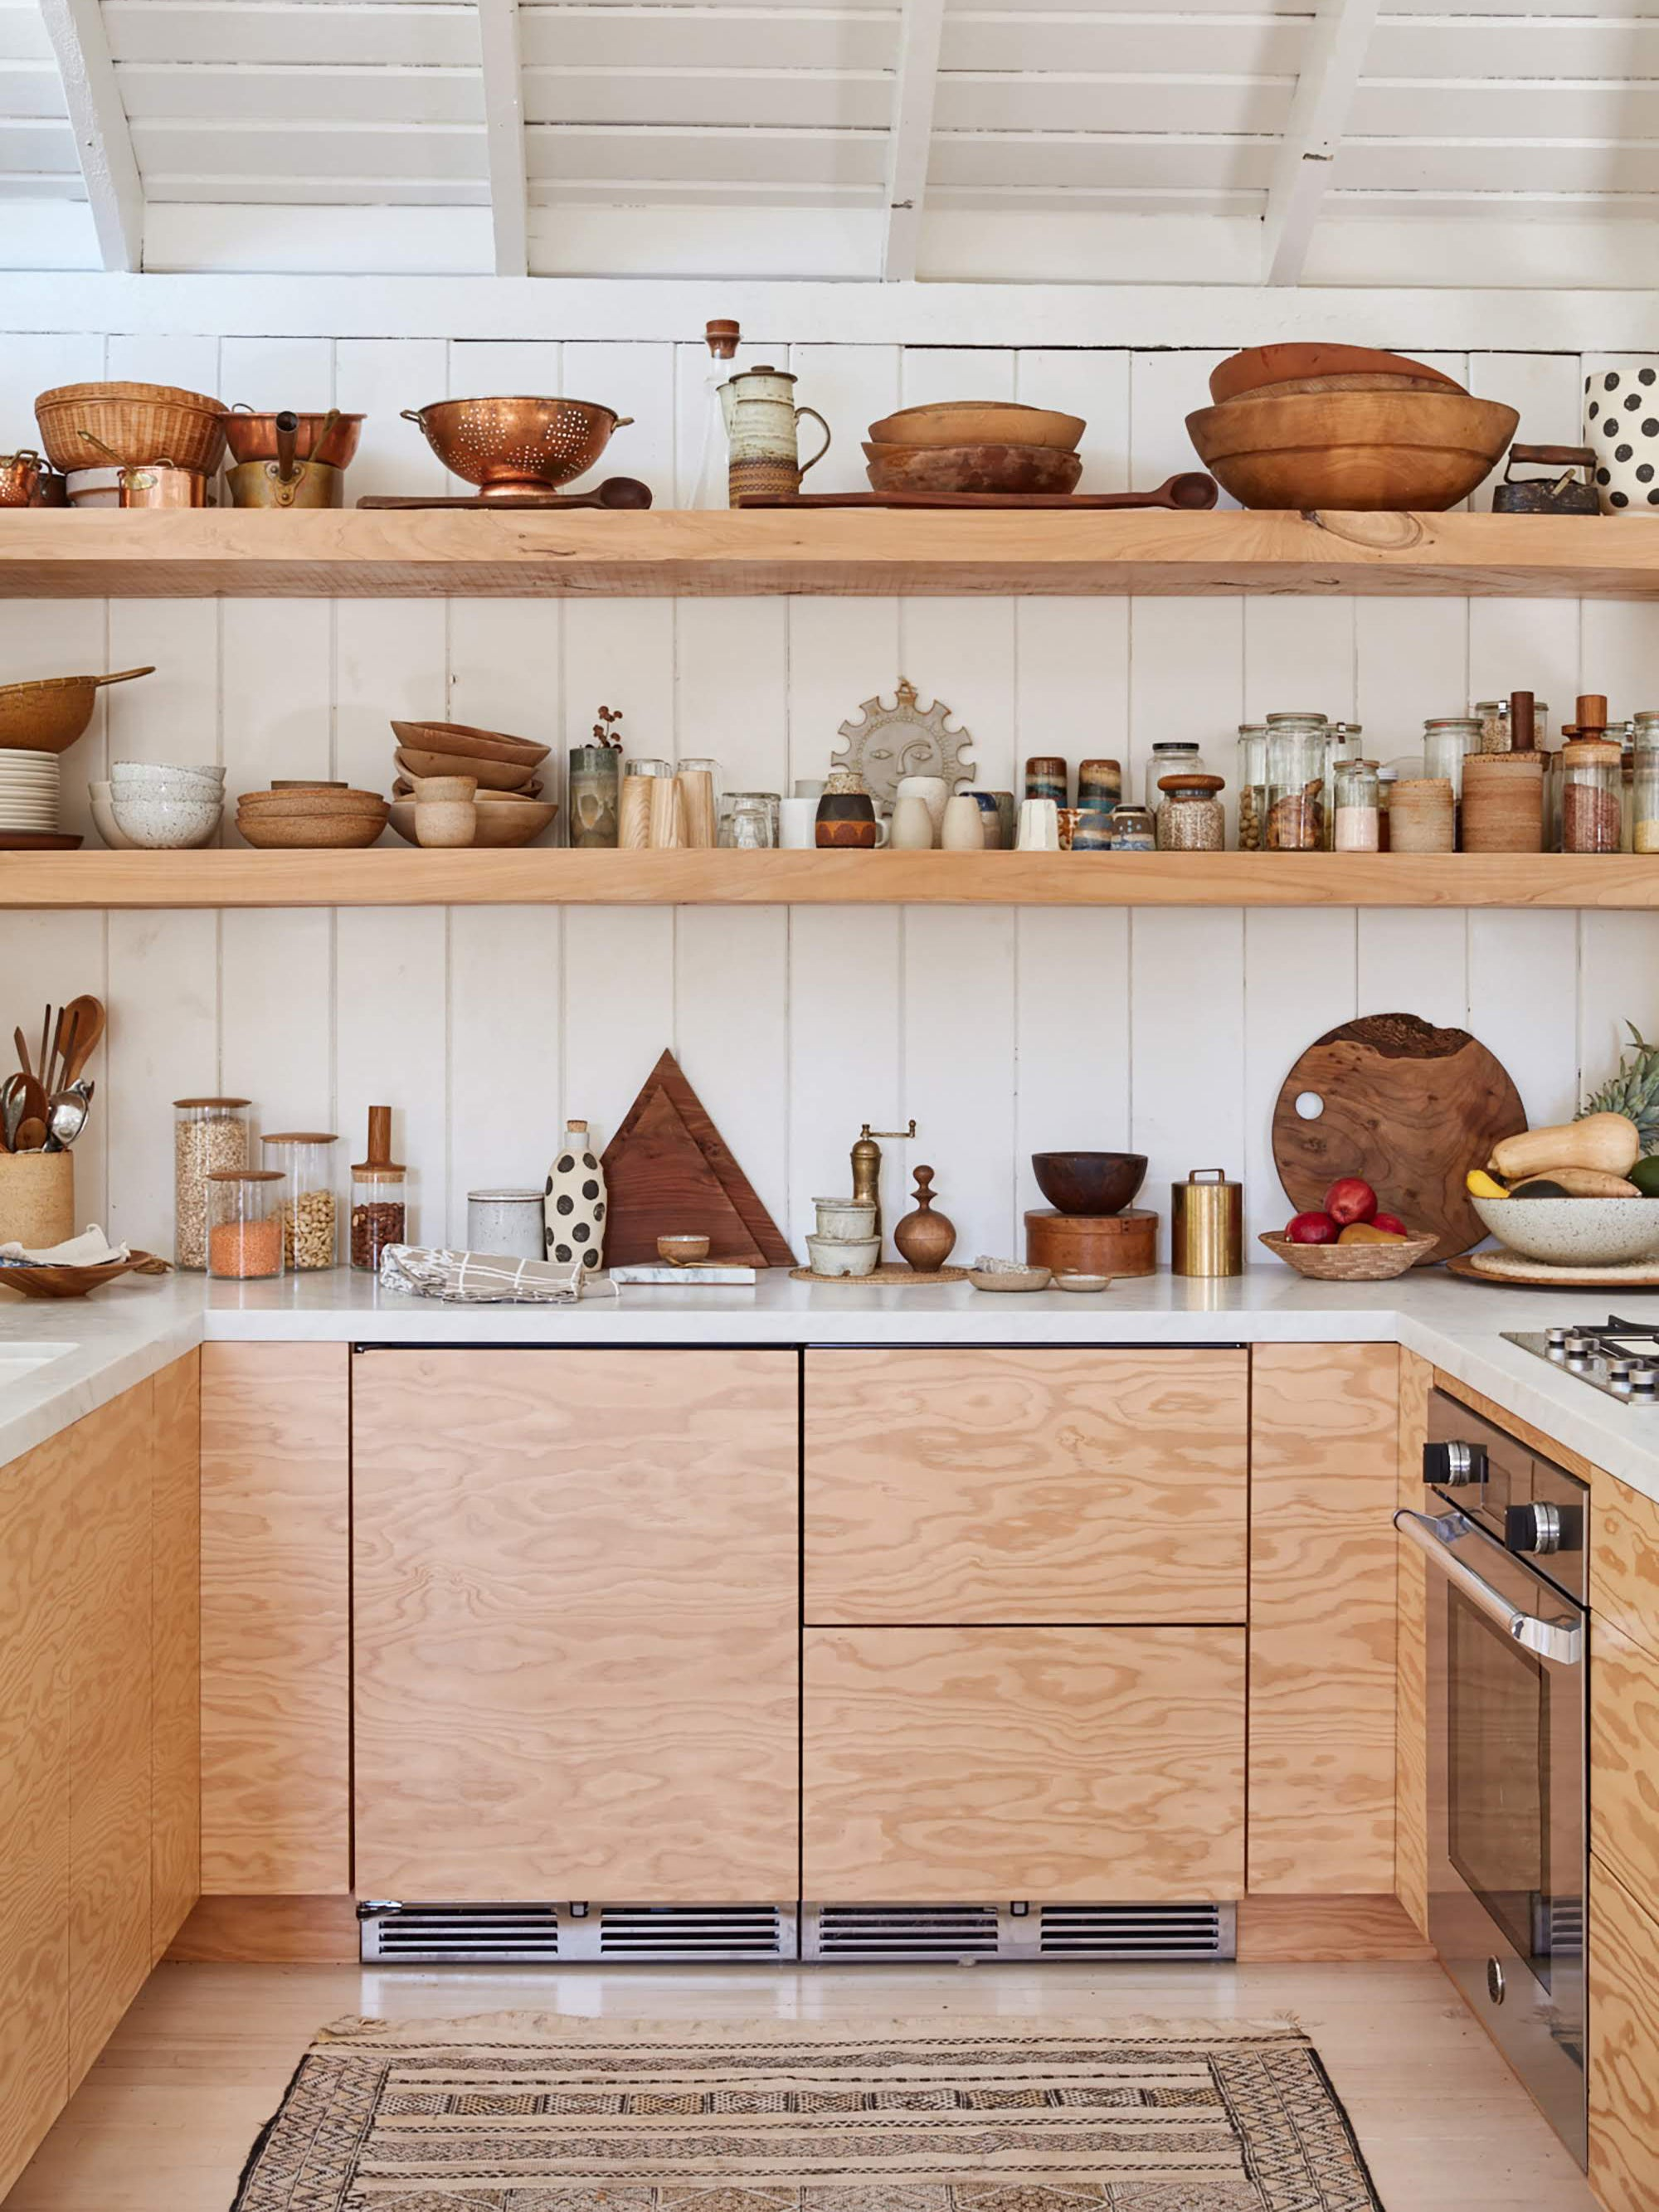 The First Step to Going Low Waste Is Surprisingly Simple